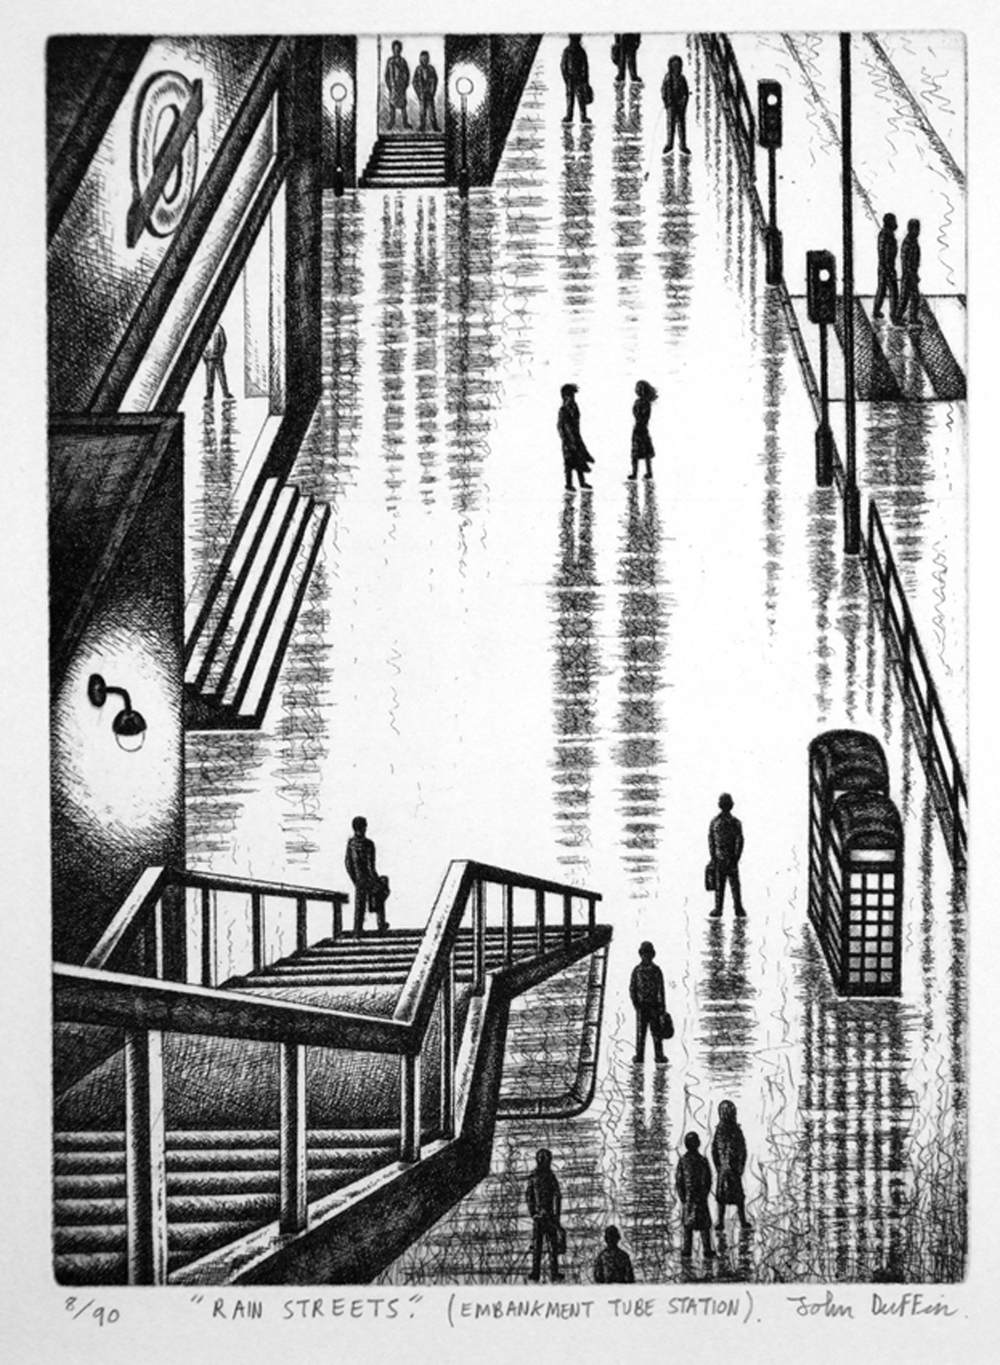 Rain Streets (Embankment Tube Station) etching